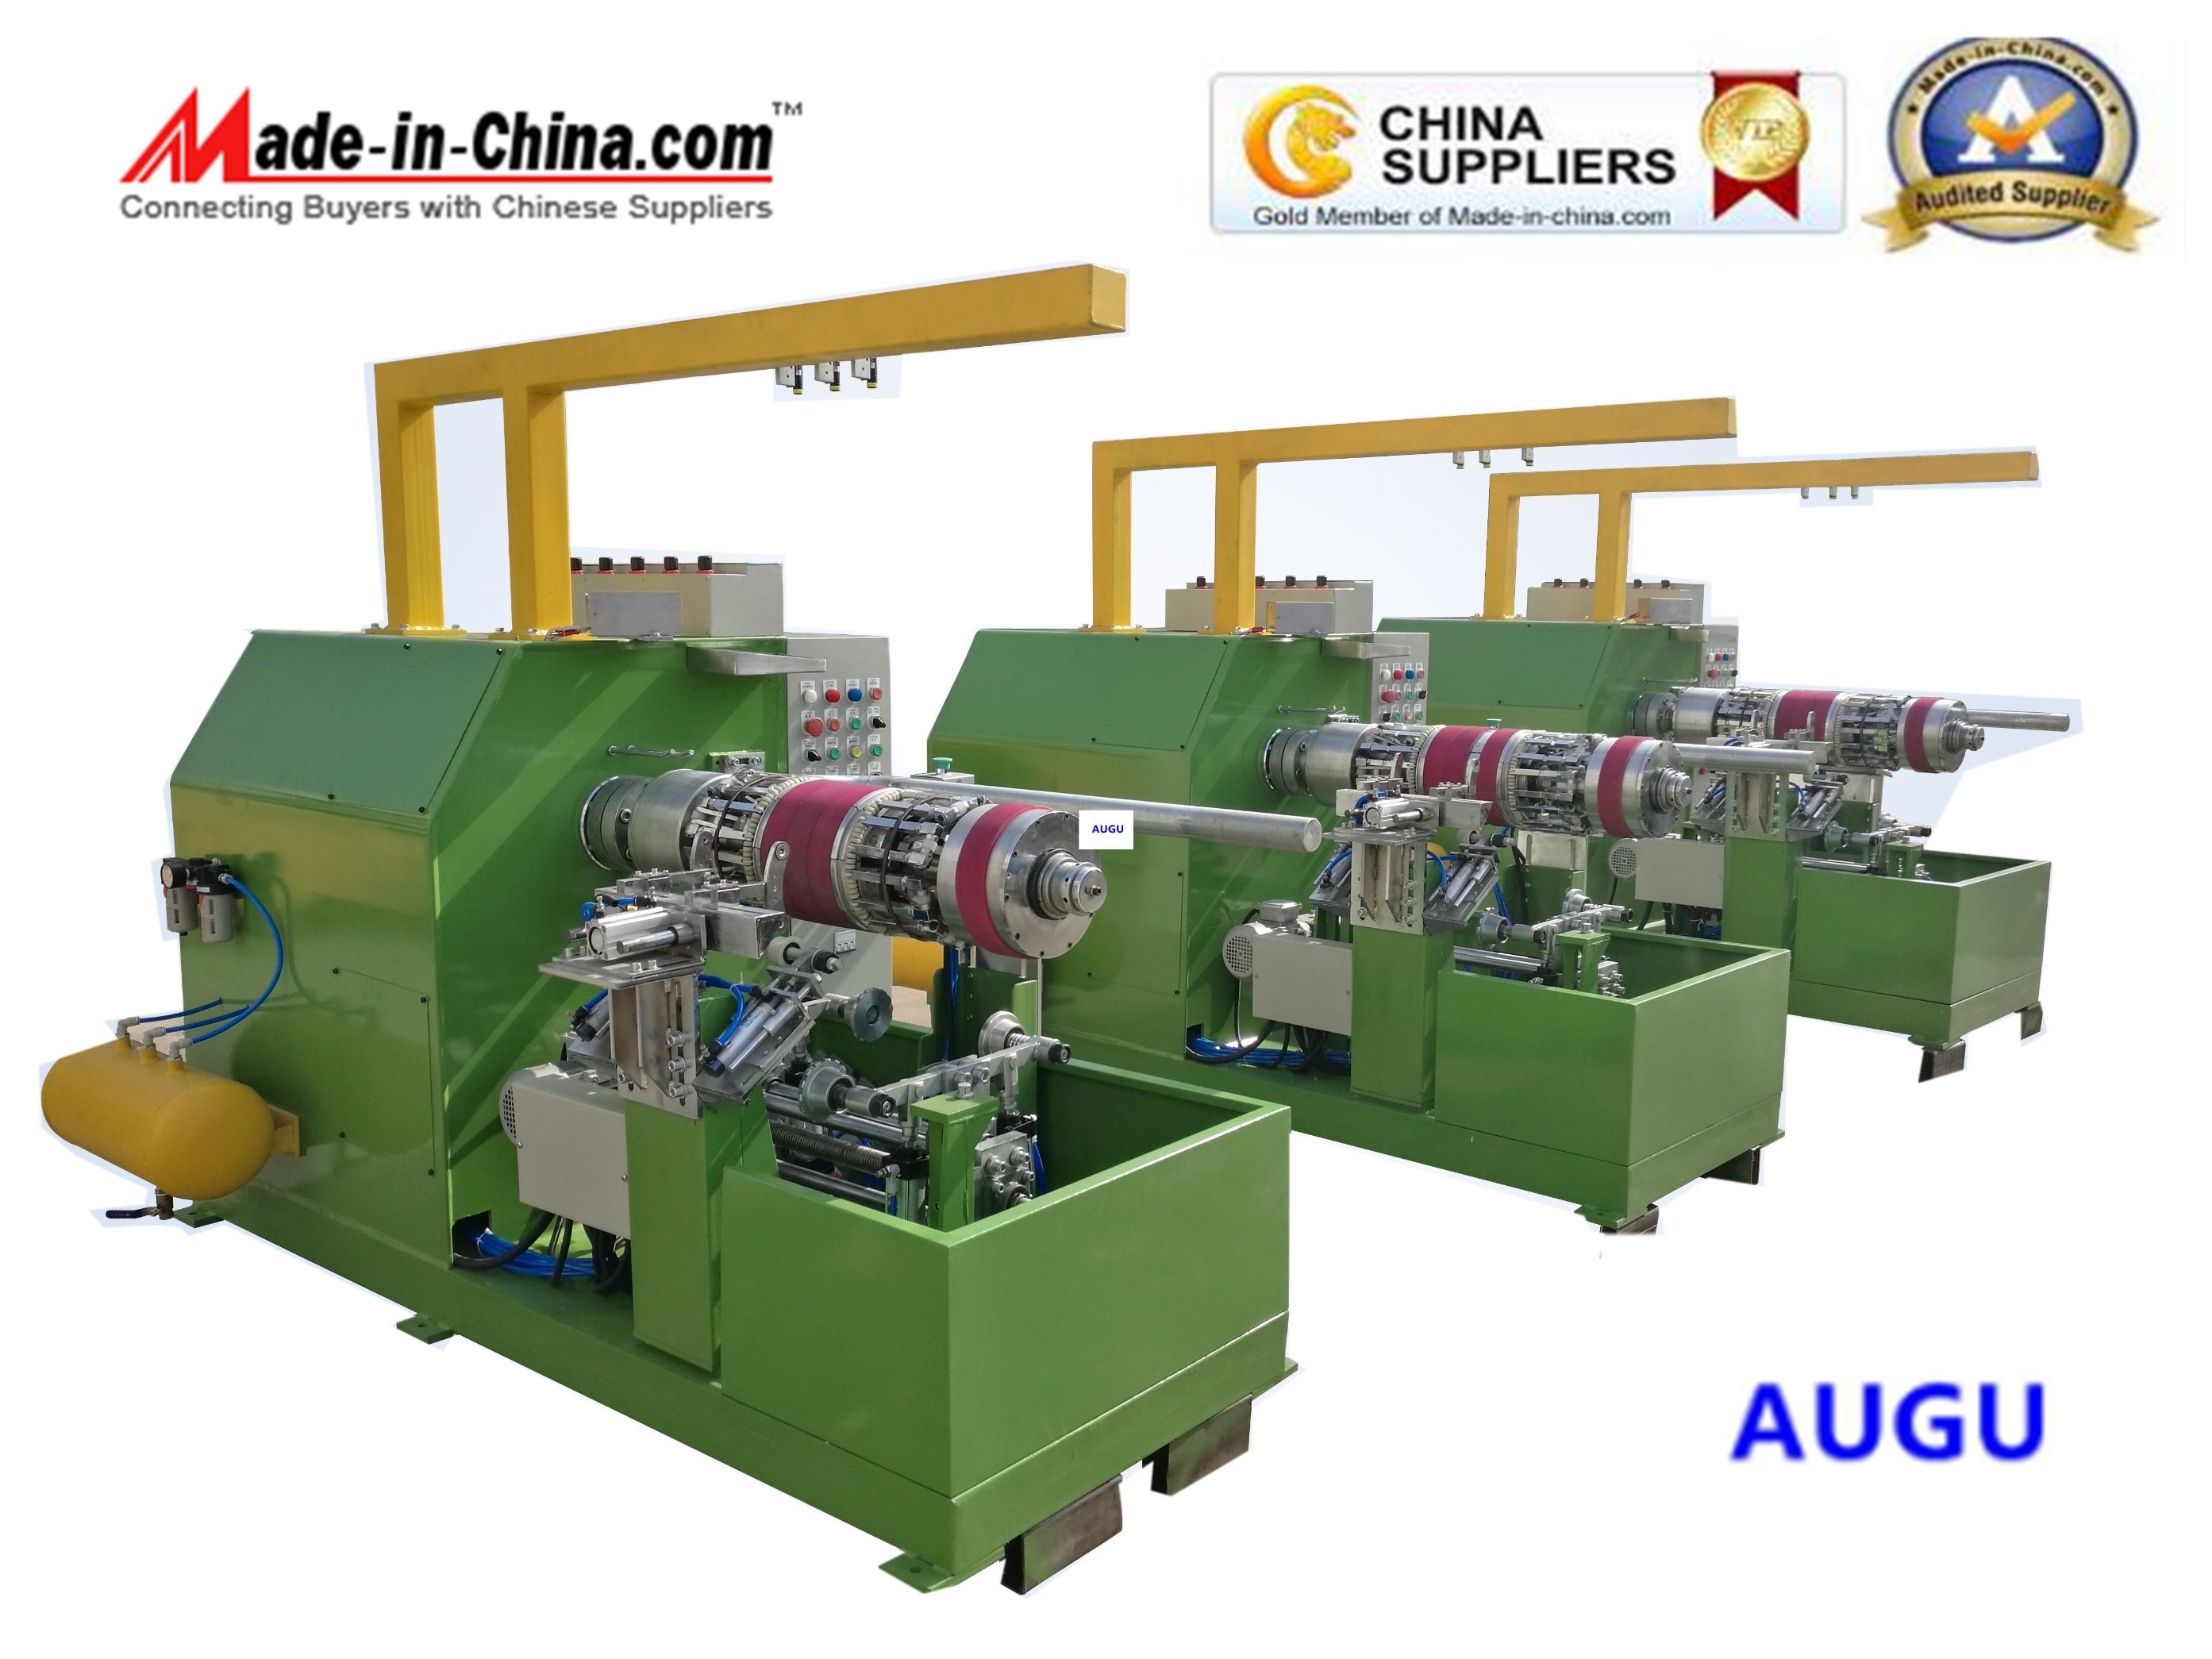 The Customizable Motorcycle Tyre Molding Machine with Fully Automatic Control